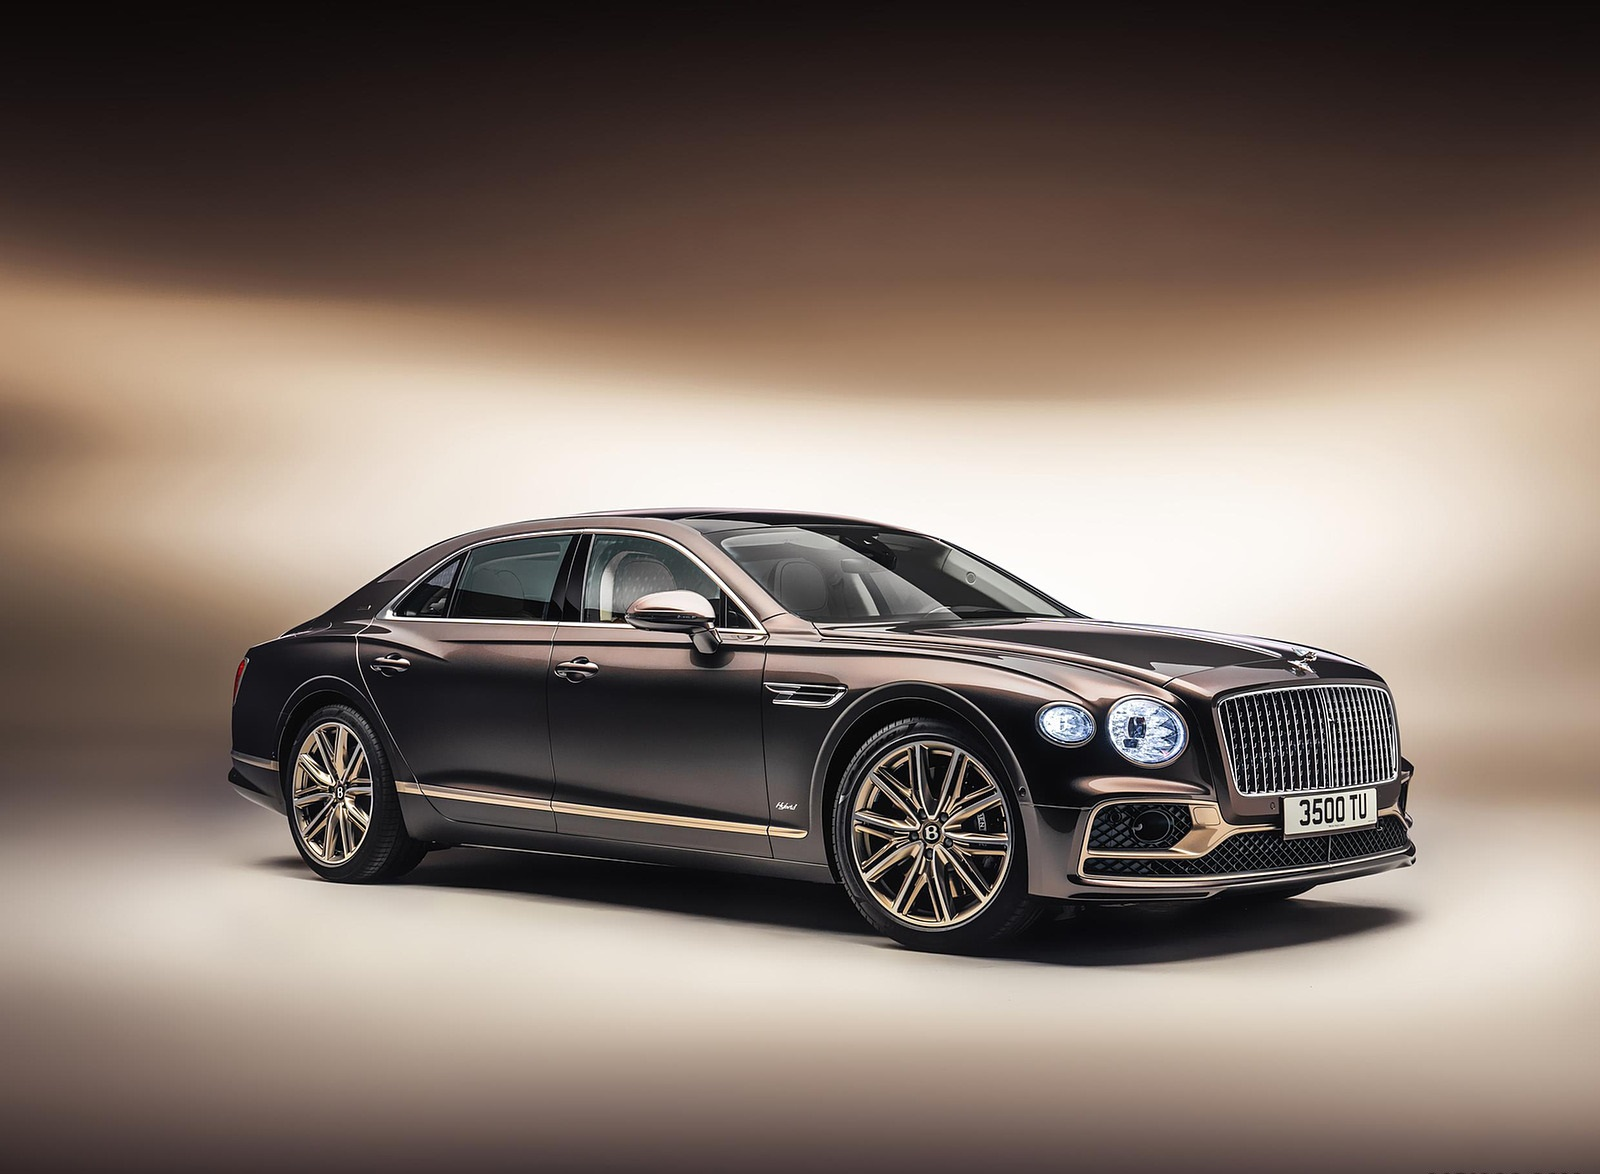 2022 Bentley Flying Spur Hybrid Odyssean Edition Front Three-Quarter Wallpapers (1)